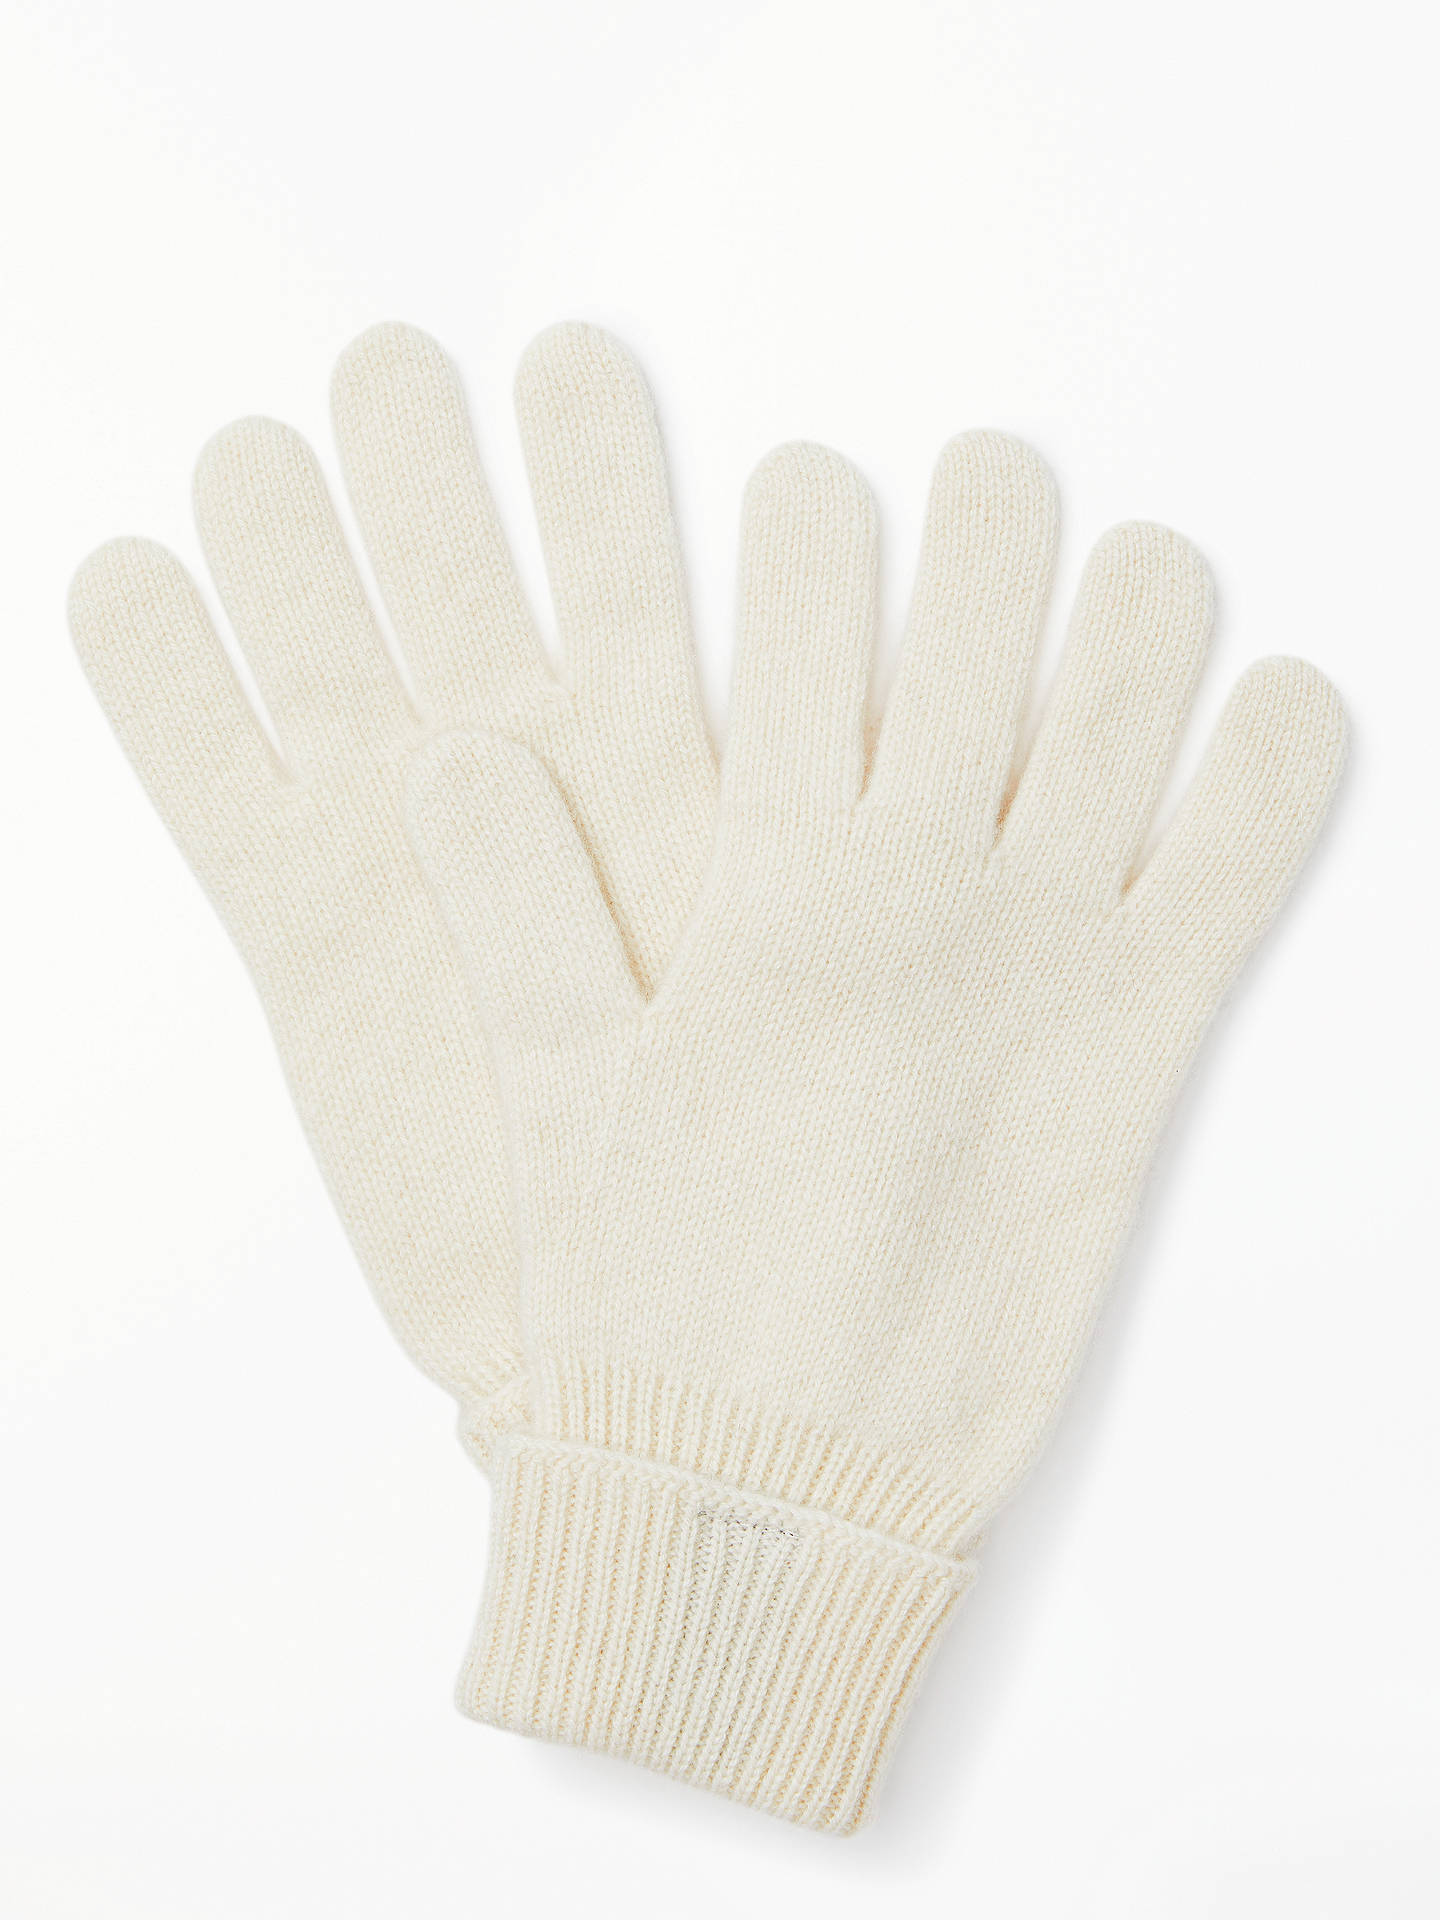 BuyJohn Lewis & Partners Cashmere Gloves, Cream Online at johnlewis.com